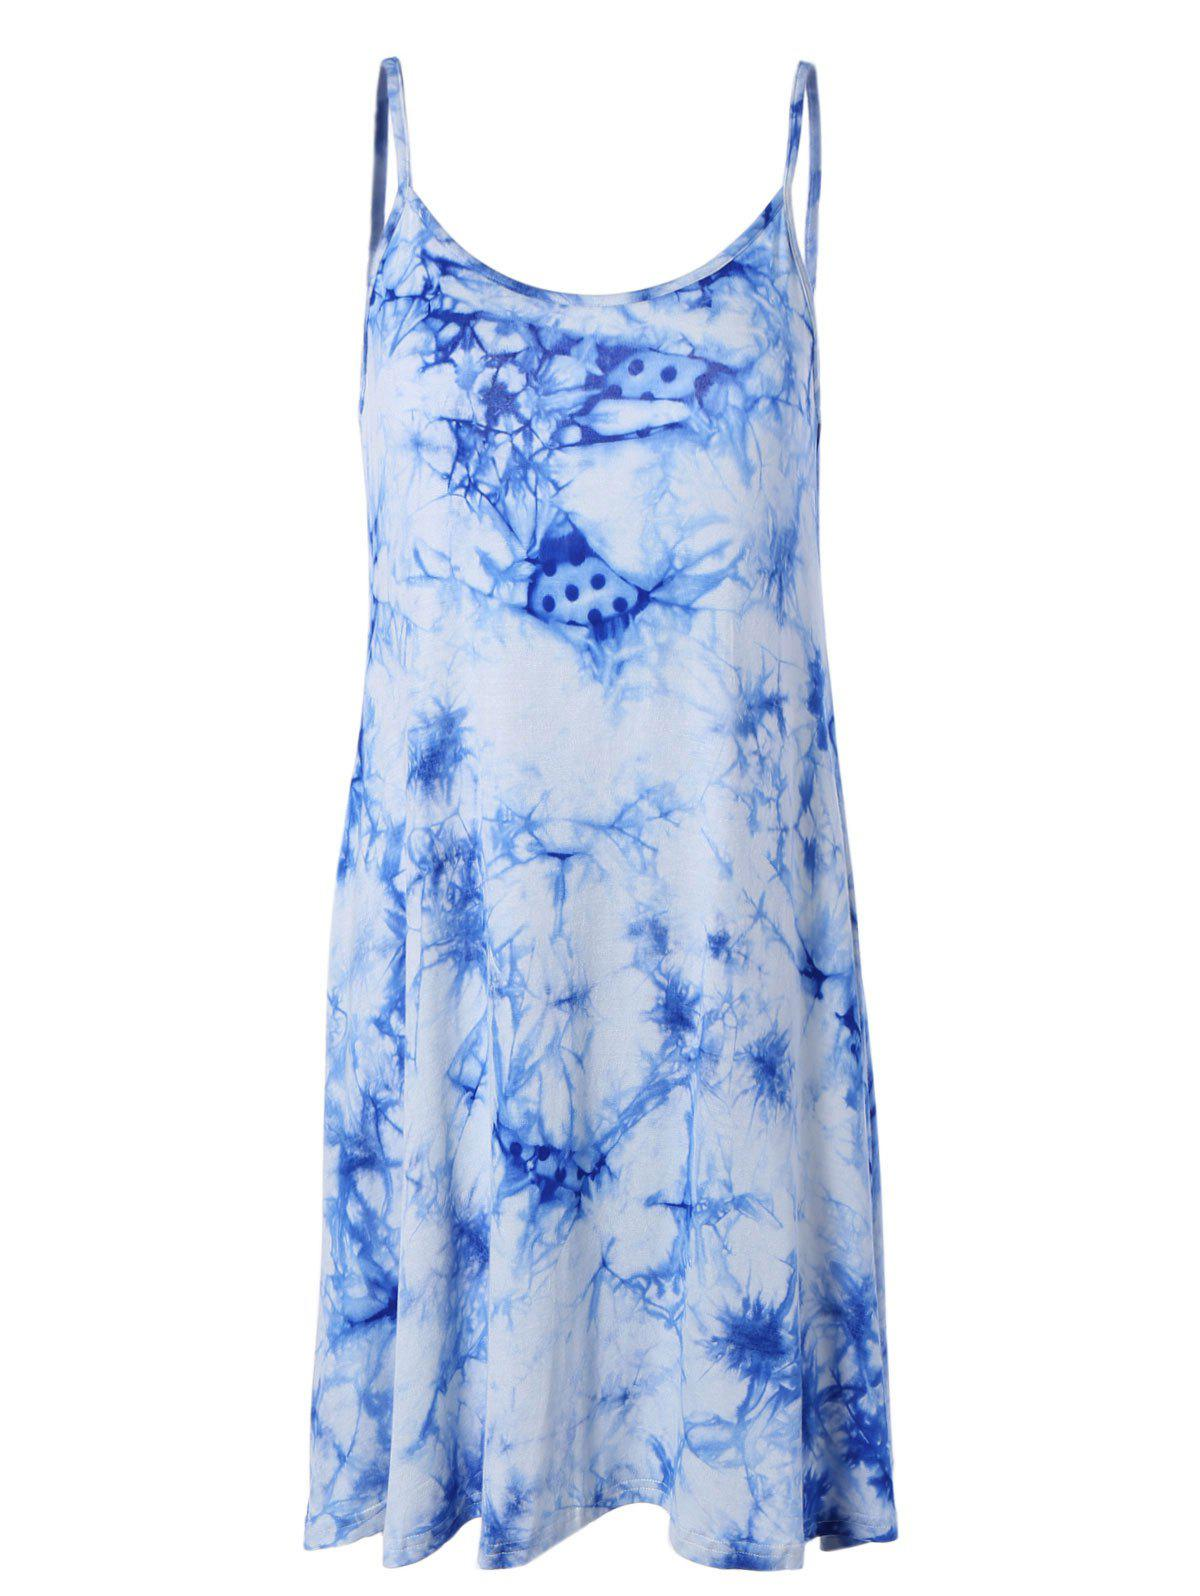 Charming Spaghetti Strap Tie-Dye Backless Women's Dress - BLUE 3XL